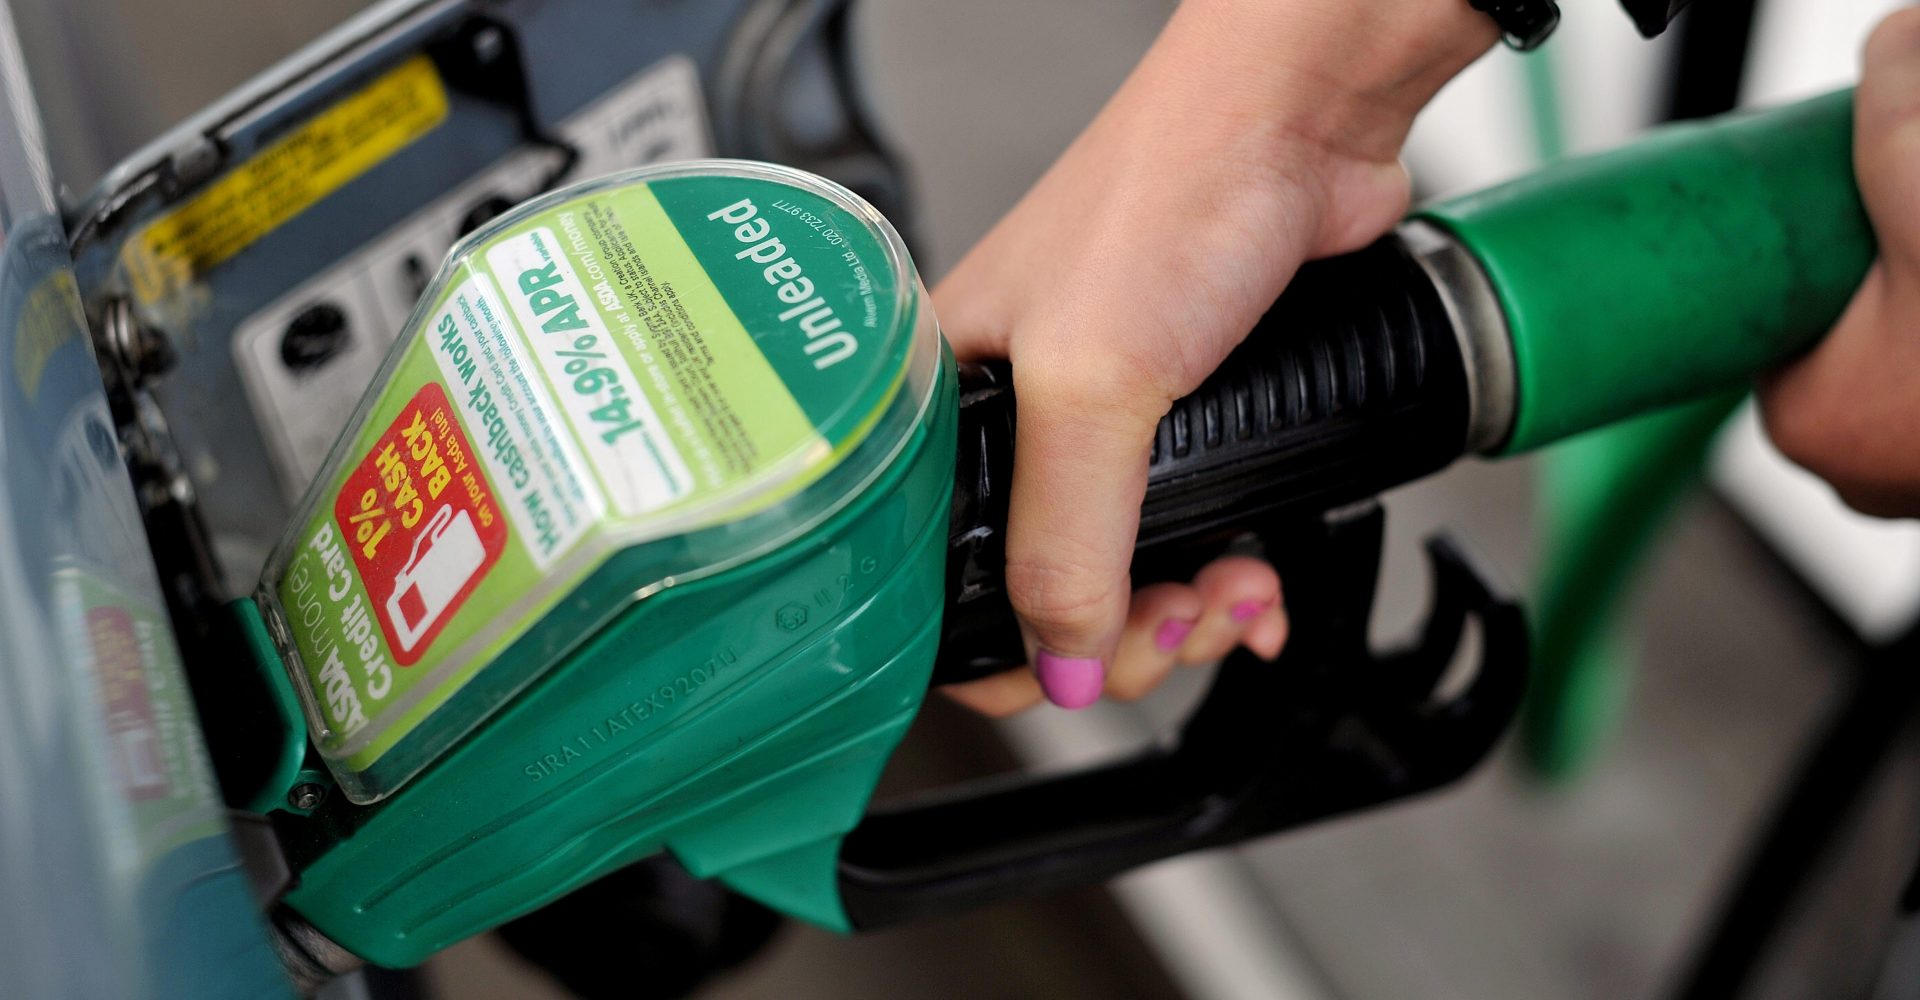 Asda cuts fuel prices for second time in three weeks